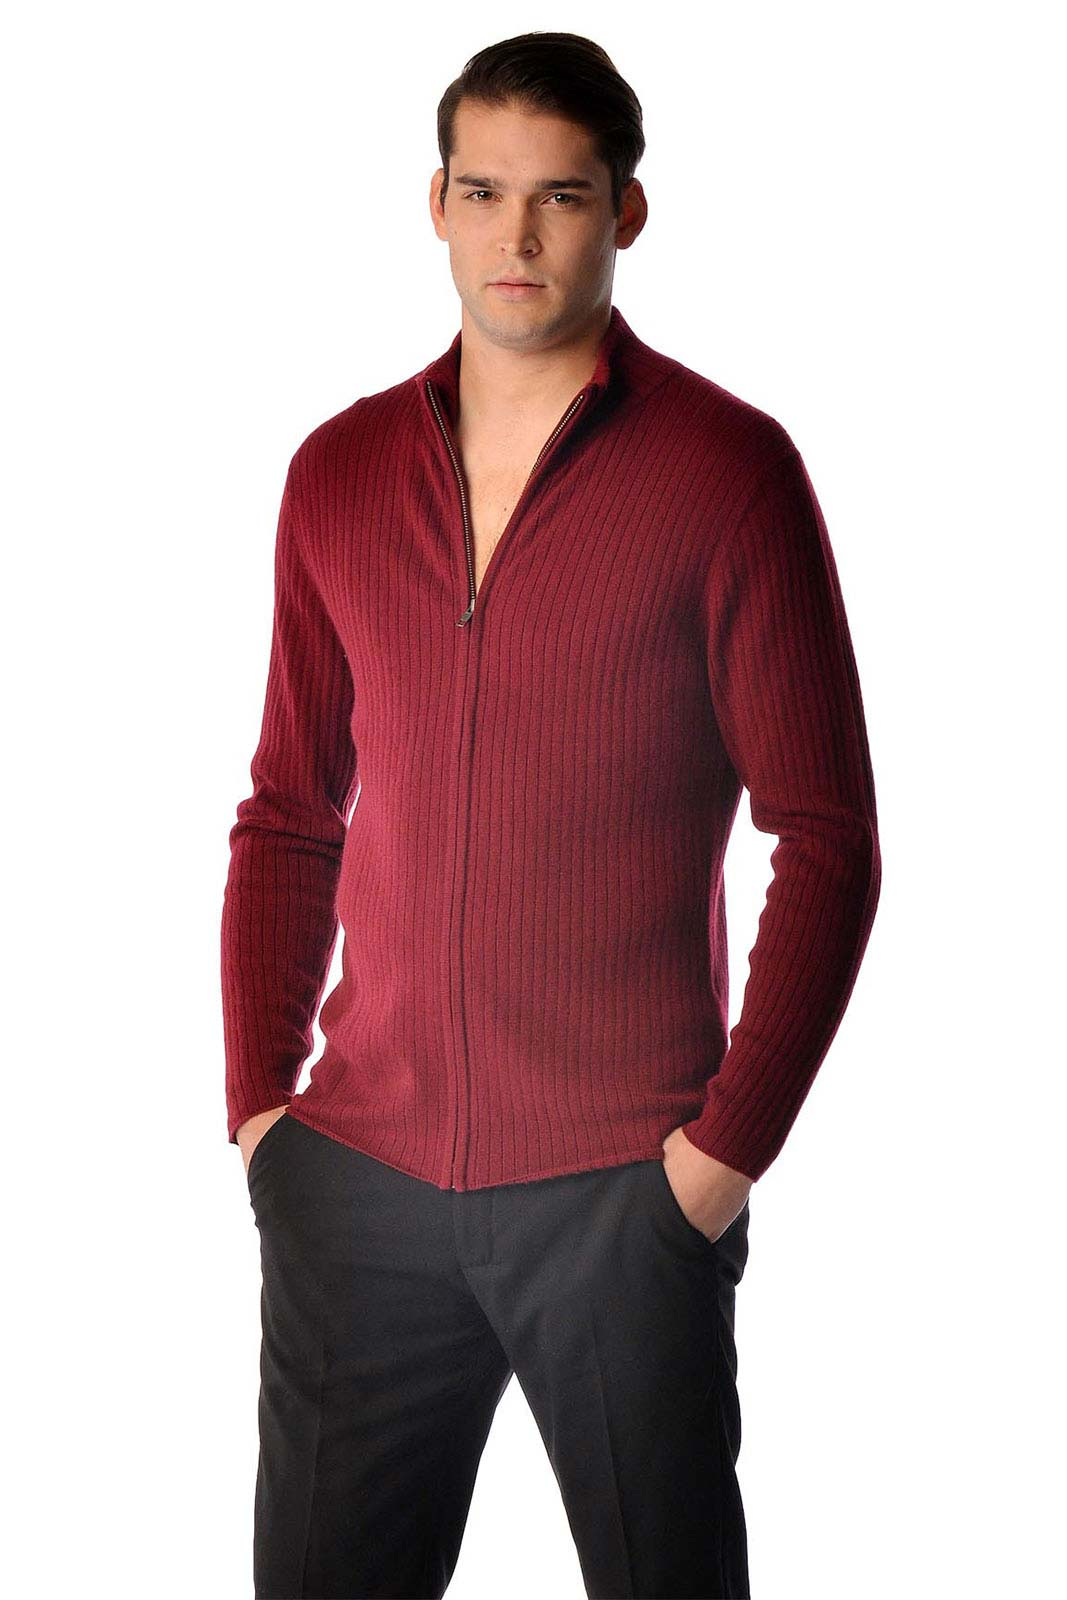 This is a pure cashmere zip cardigan jacket for men. Luxurious soft and really warm our sweaters are made from the finest grade of cashmere. These sweaters are made from A-Grade 3 ply pure cashmere yarn and offer unsurpassed warmth and softness.The Small size is offered only in the Black color.